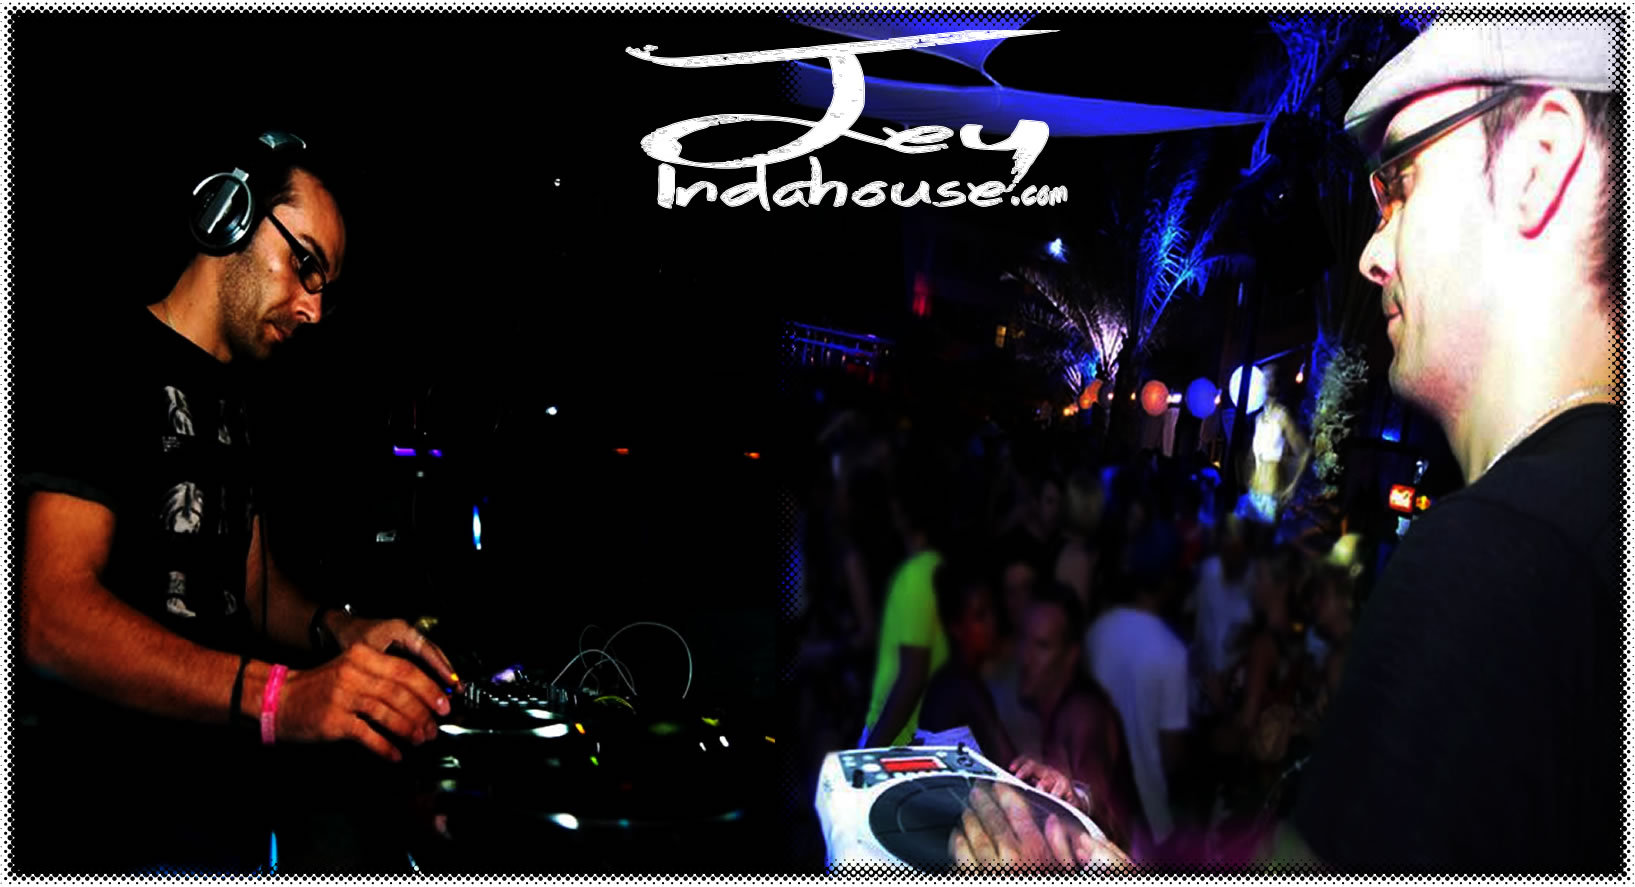 Jey_Indahouse_DJ_vs_Percussion_2015_+_logo